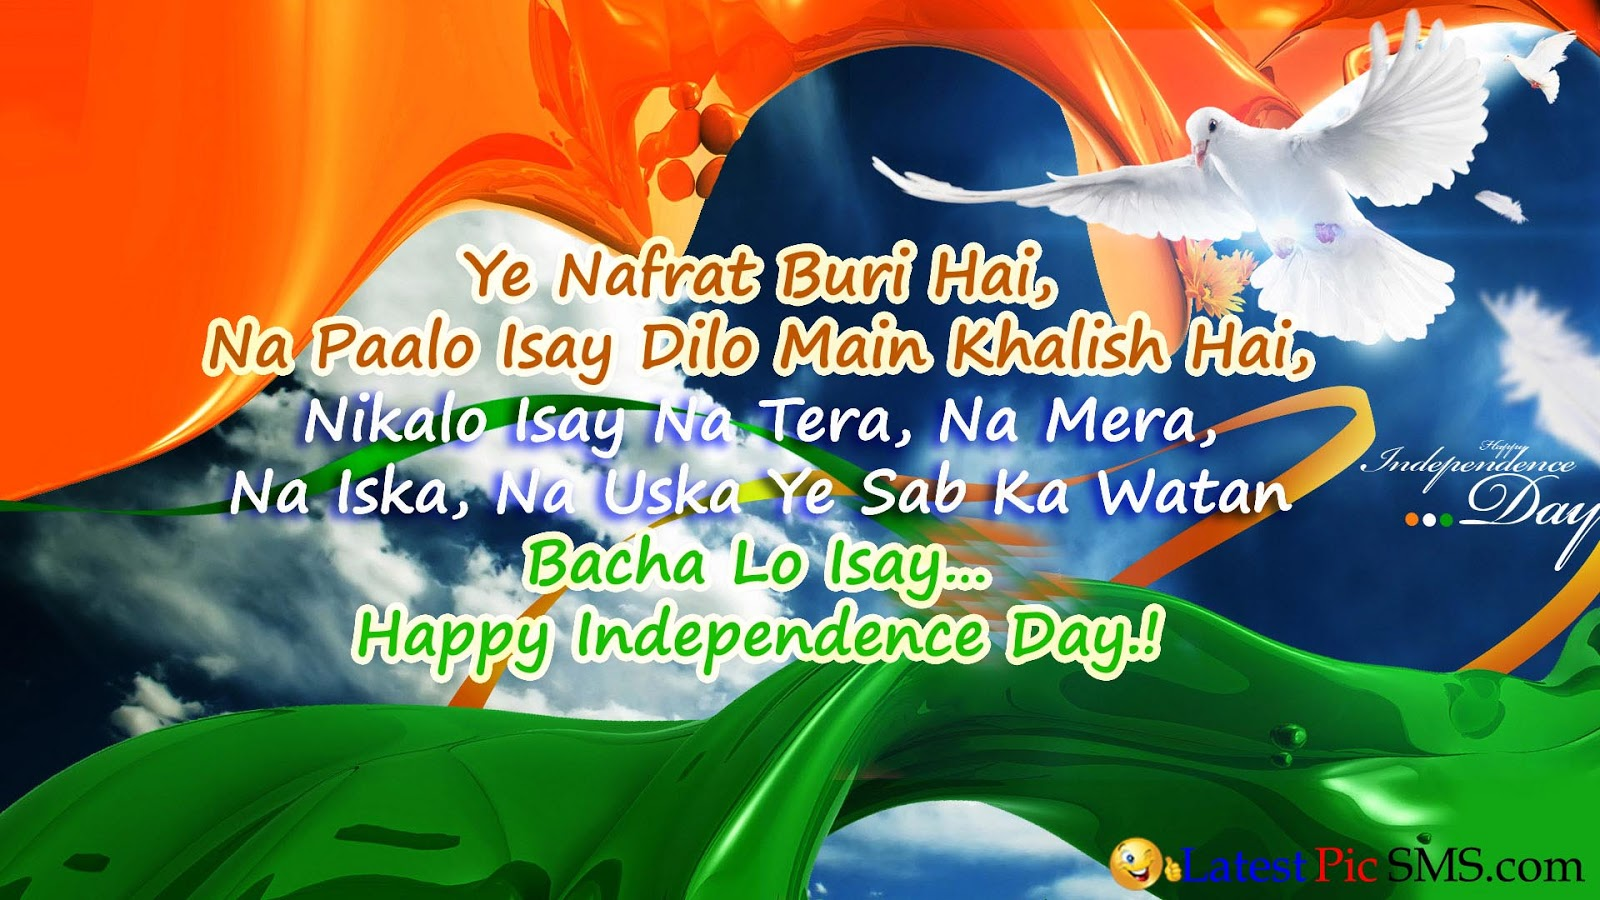 india independence day Quotes wallpaper - Happy Independence Day India Quotes, Wishes and Greetings for Whatsapp